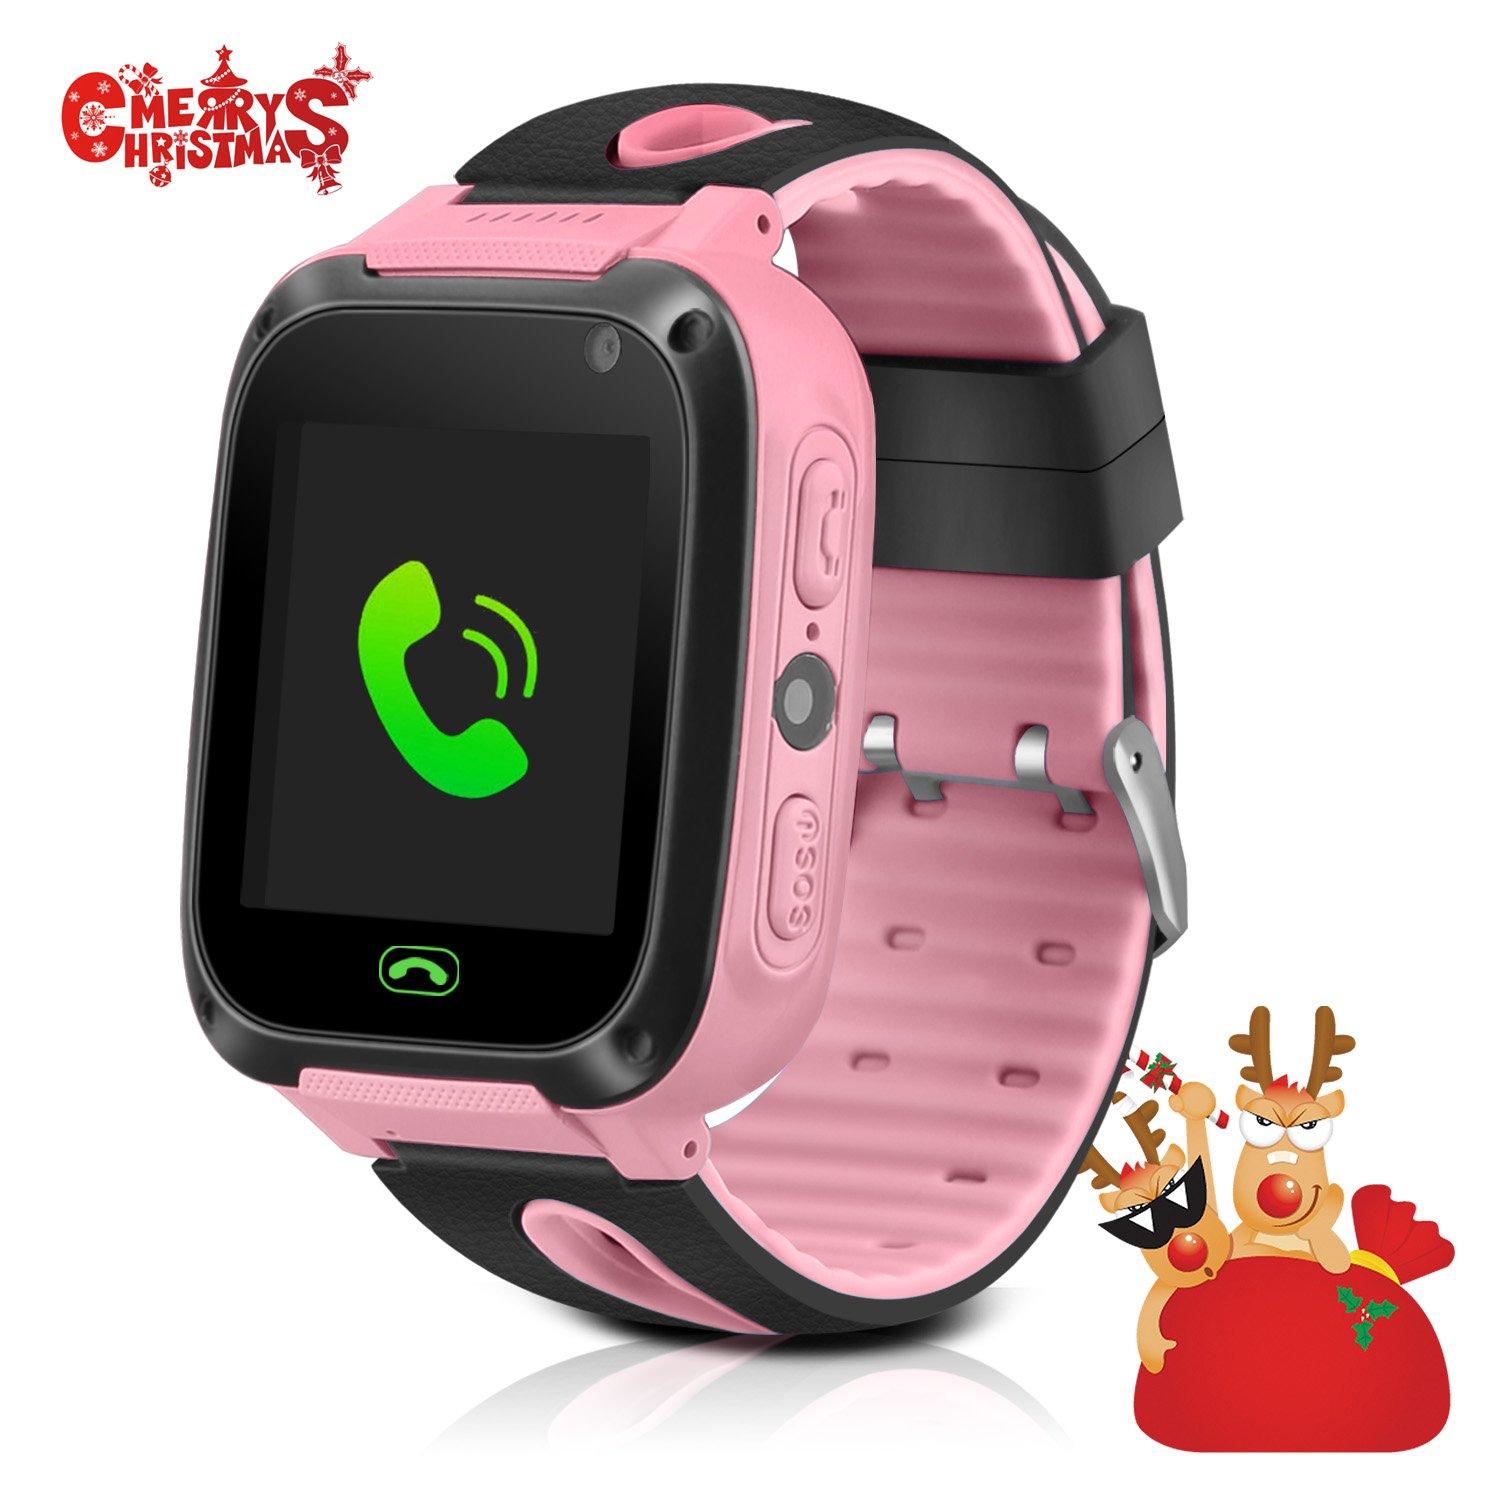 GPS Tracker Kids Smart Watch, Phone Watch for Kids, Silicone Watch Touch Screen Version Camera With SIM Anti-lost Phone Pedometer SOS Camera Smart Watch Bracelet Children Girls Boys Gifts